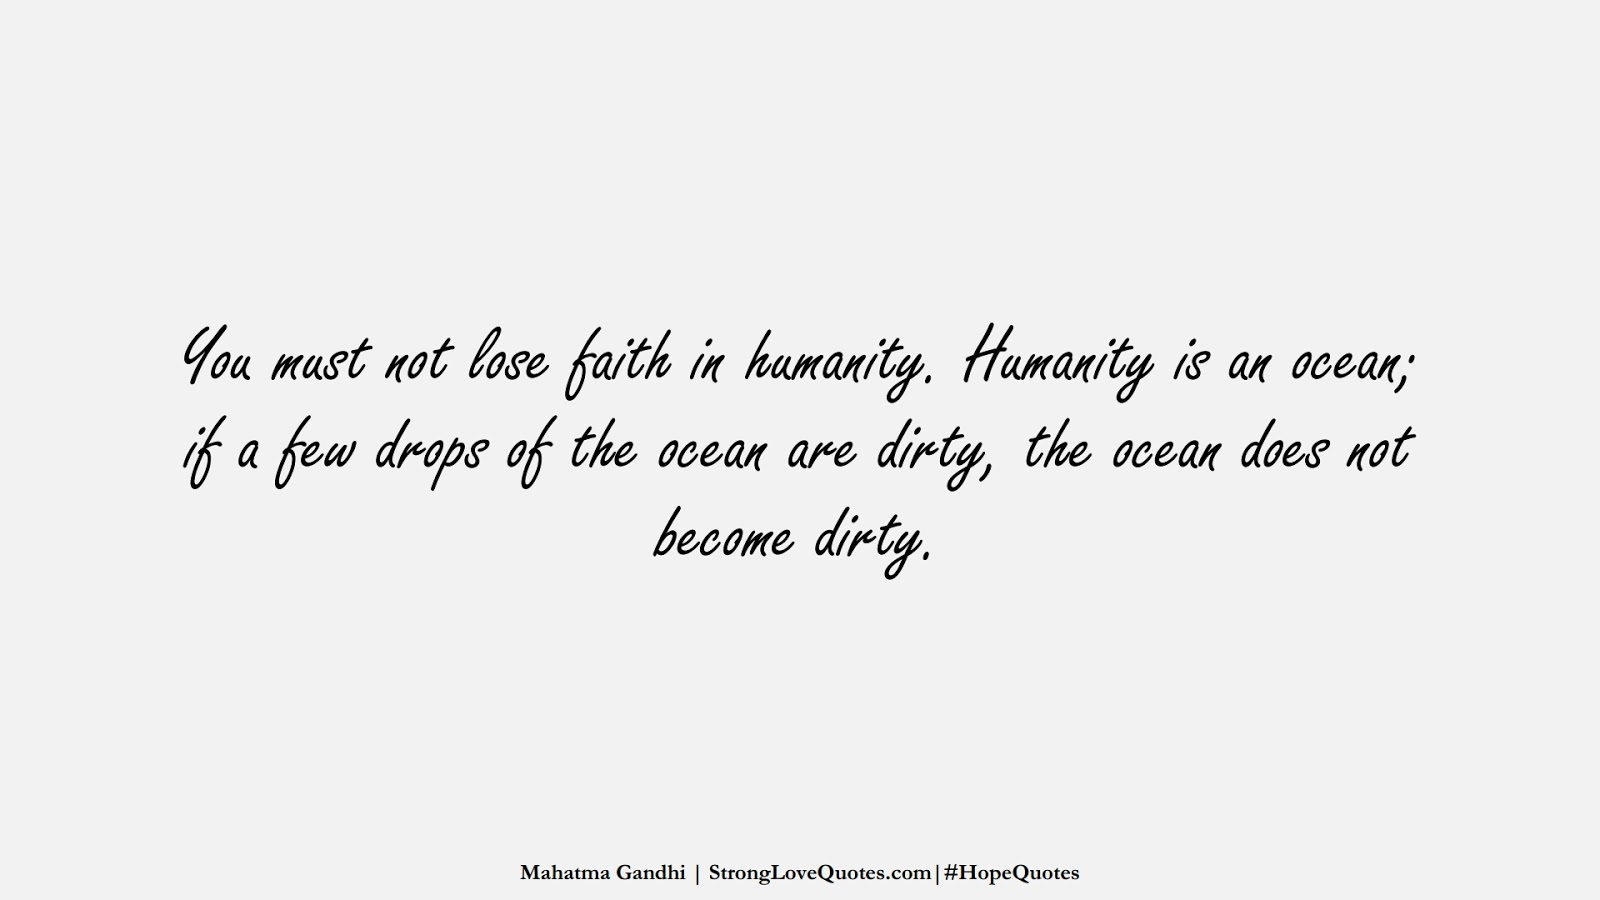 You must not lose faith in humanity. Humanity is an ocean; if a few drops of the ocean are dirty, the ocean does not become dirty. (Mahatma Gandhi);  #HopeQuotes